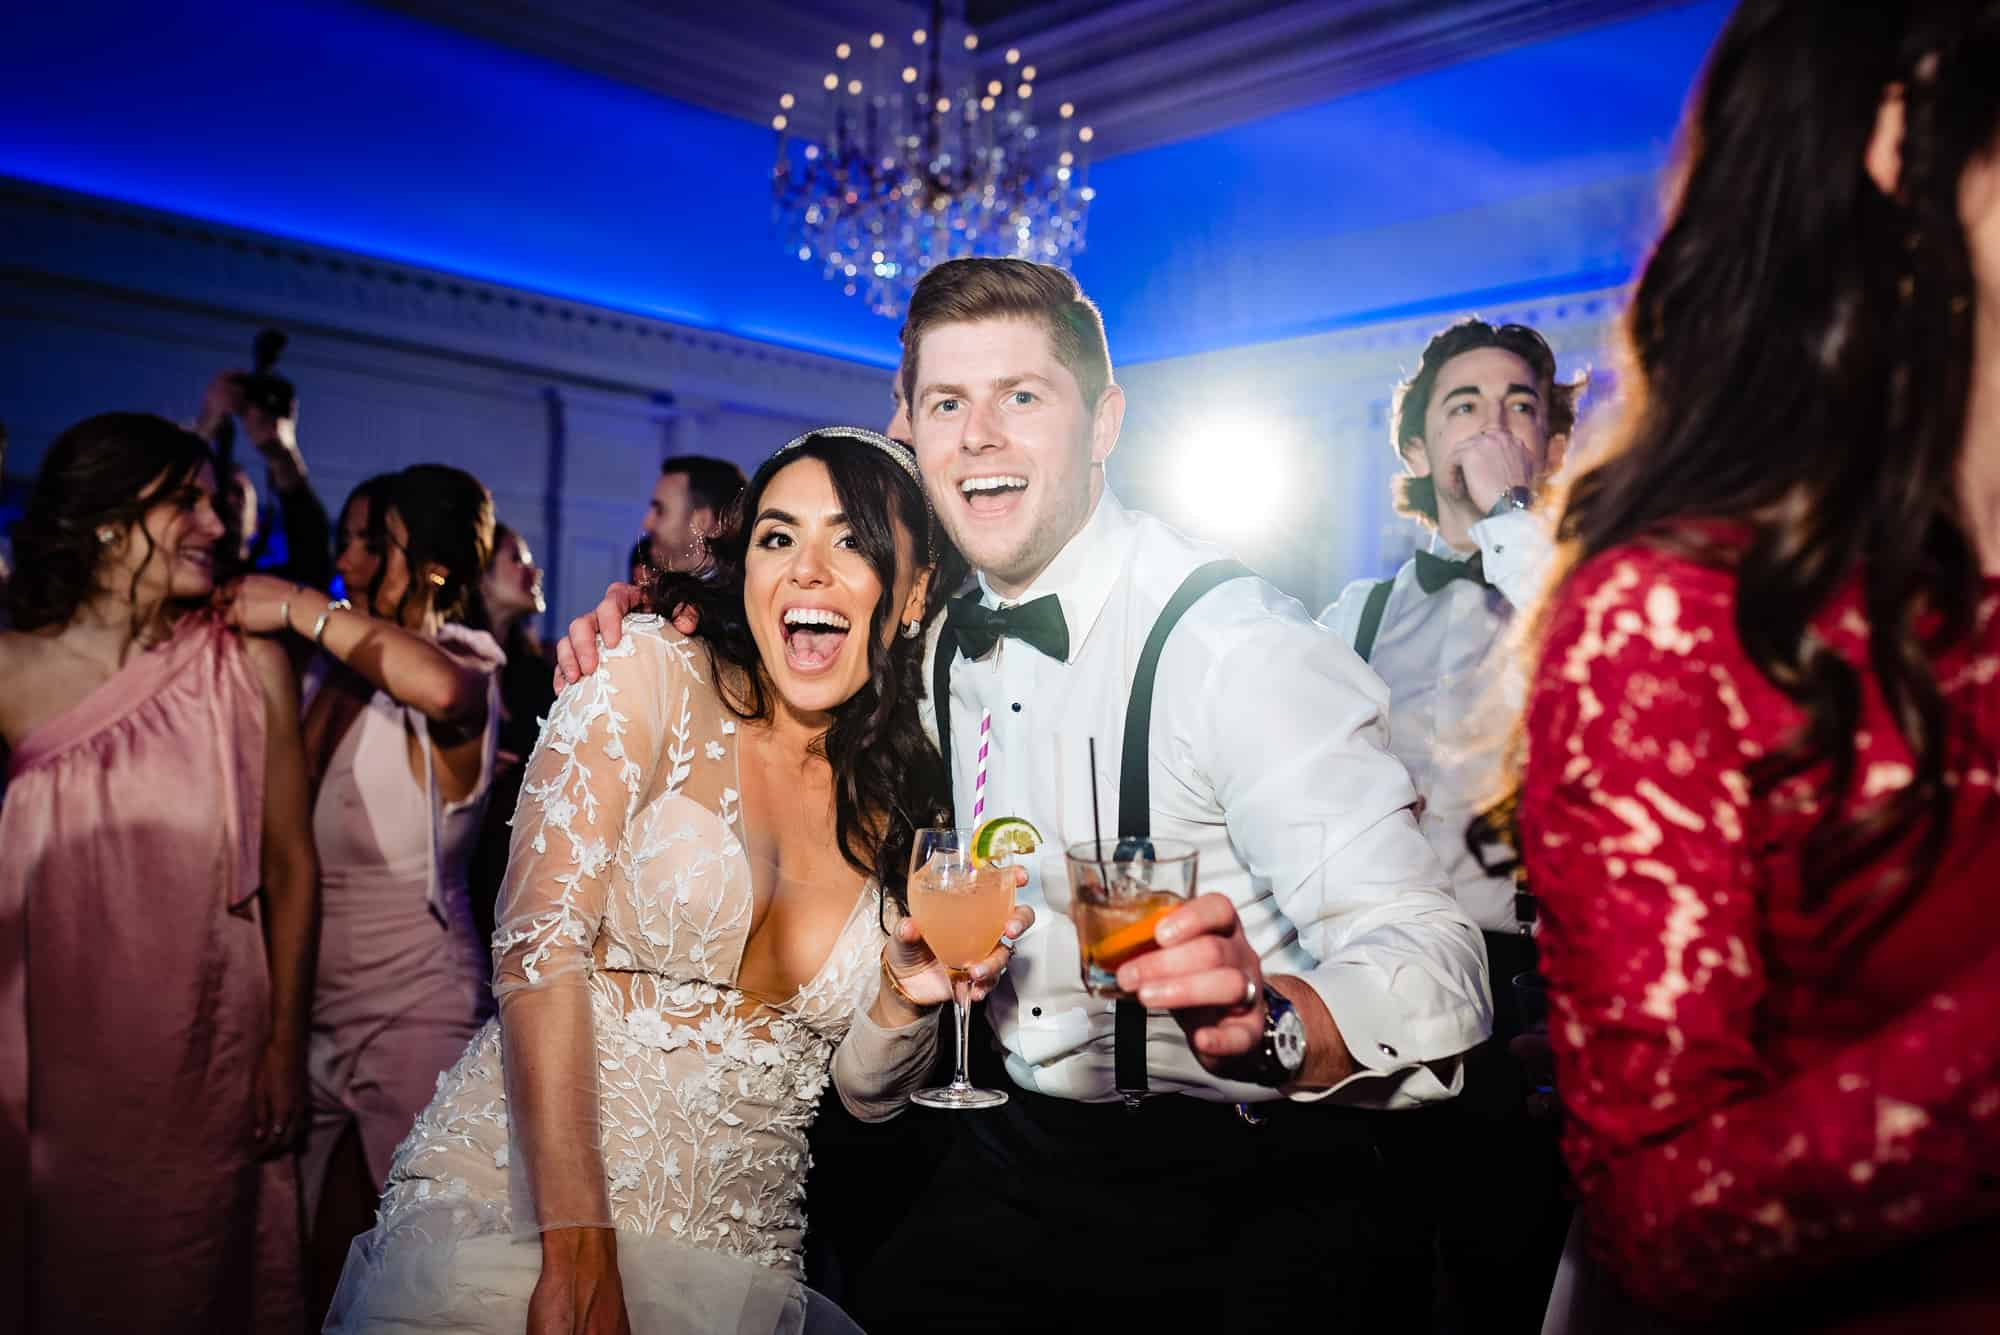 Bride and groom having a great time at the Park Chateau Wedding recpetion